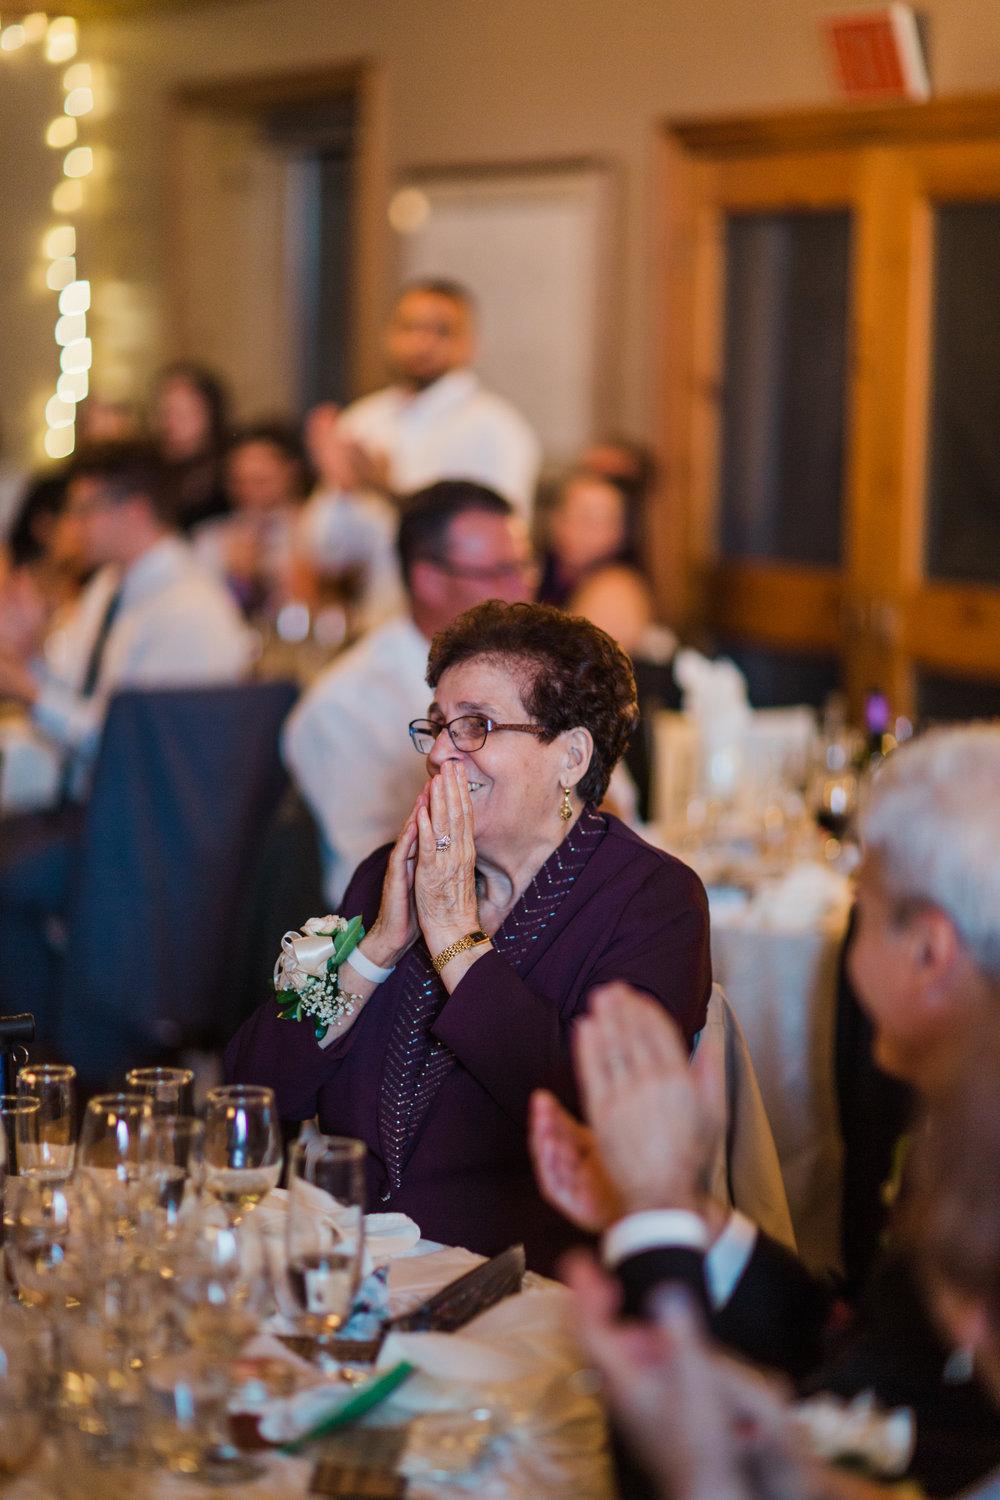 Amir-Golbazi-Danielle-Giroux-Photography_Toronto-Wedding_Cedarwood_Rachel-Paul_720.jpg